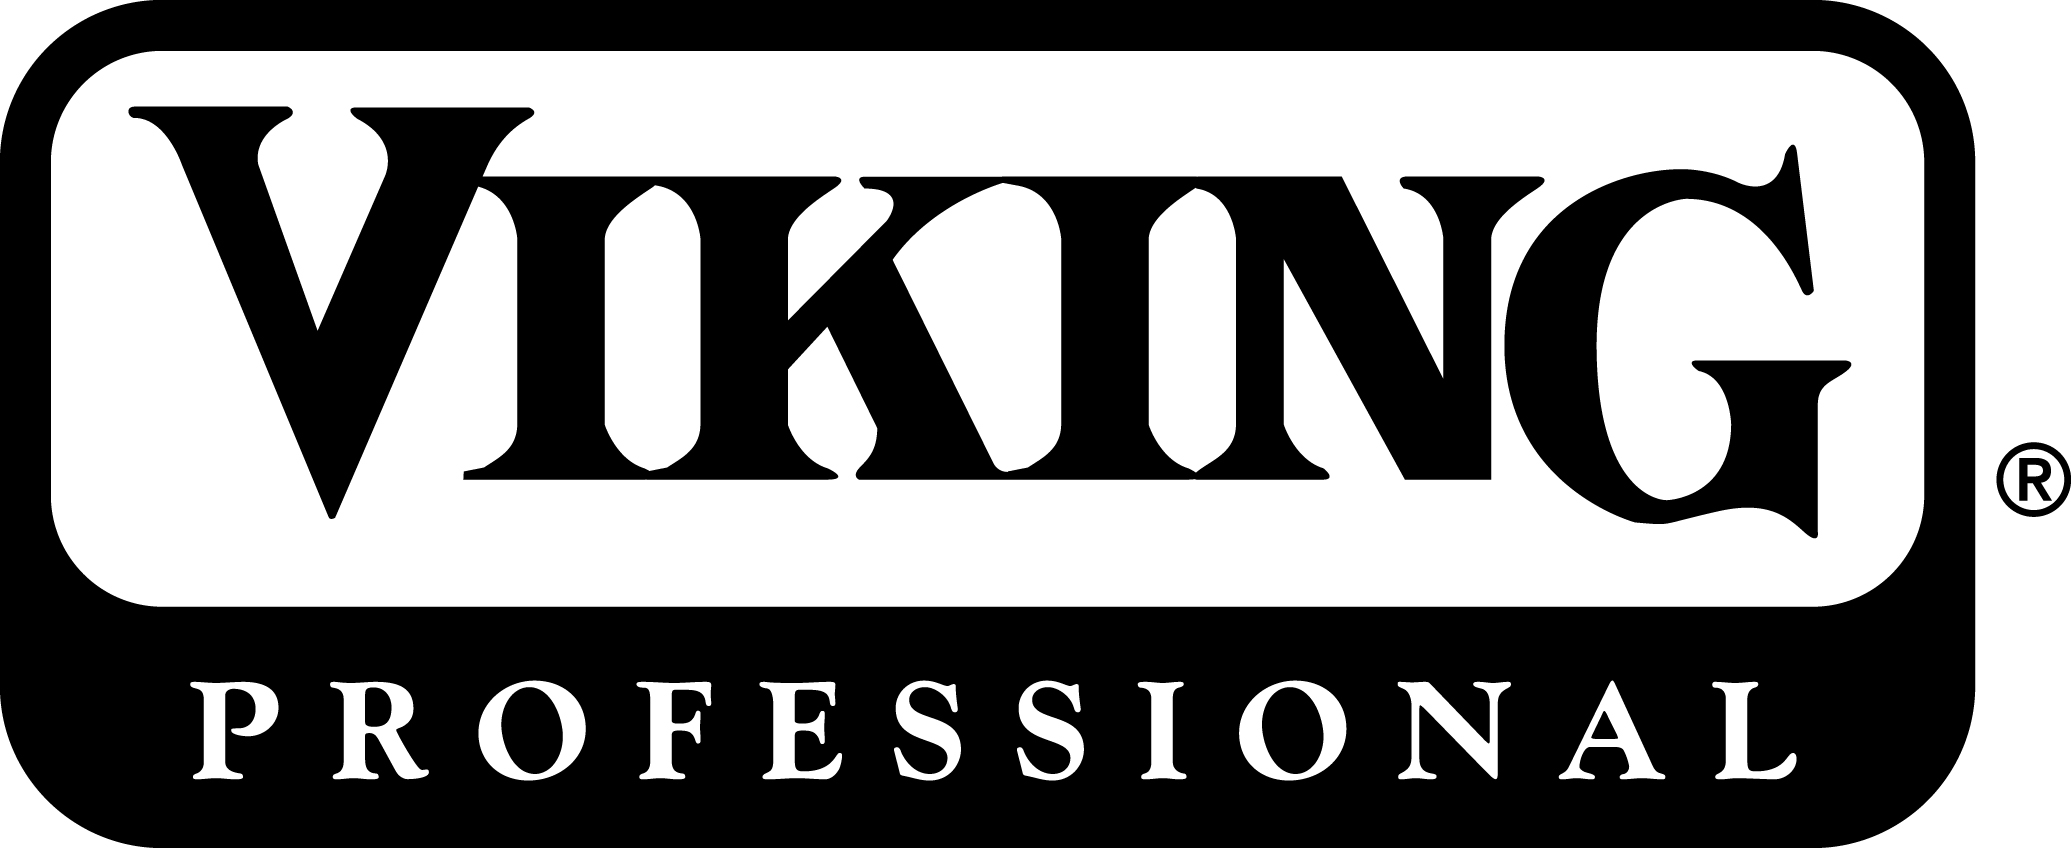 Viking Dryer Technician, Kenmore Dryer Service